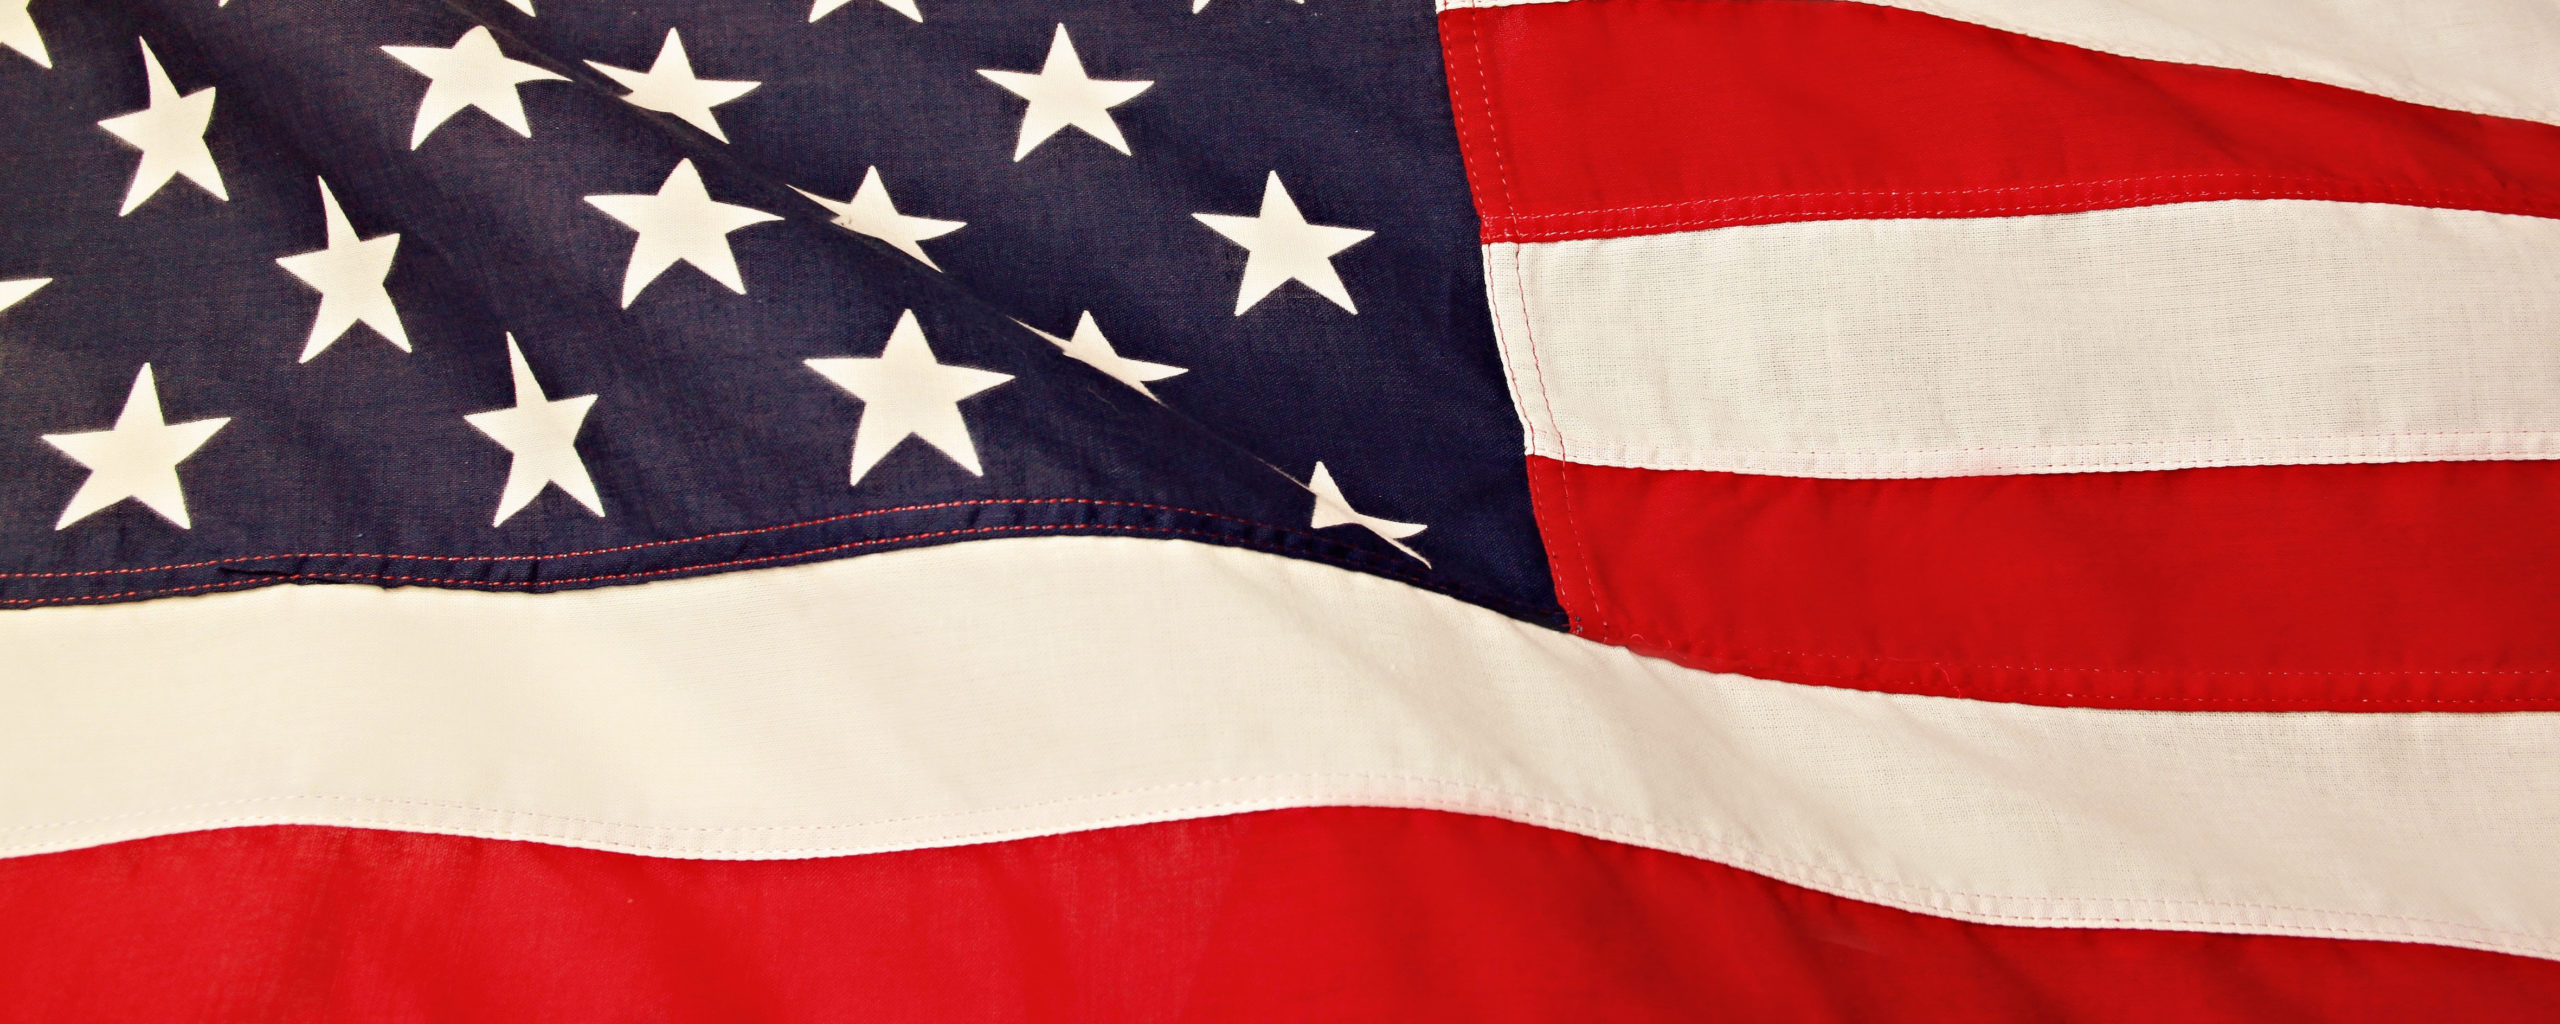 Chamber Collecting Donations for Local Veterans